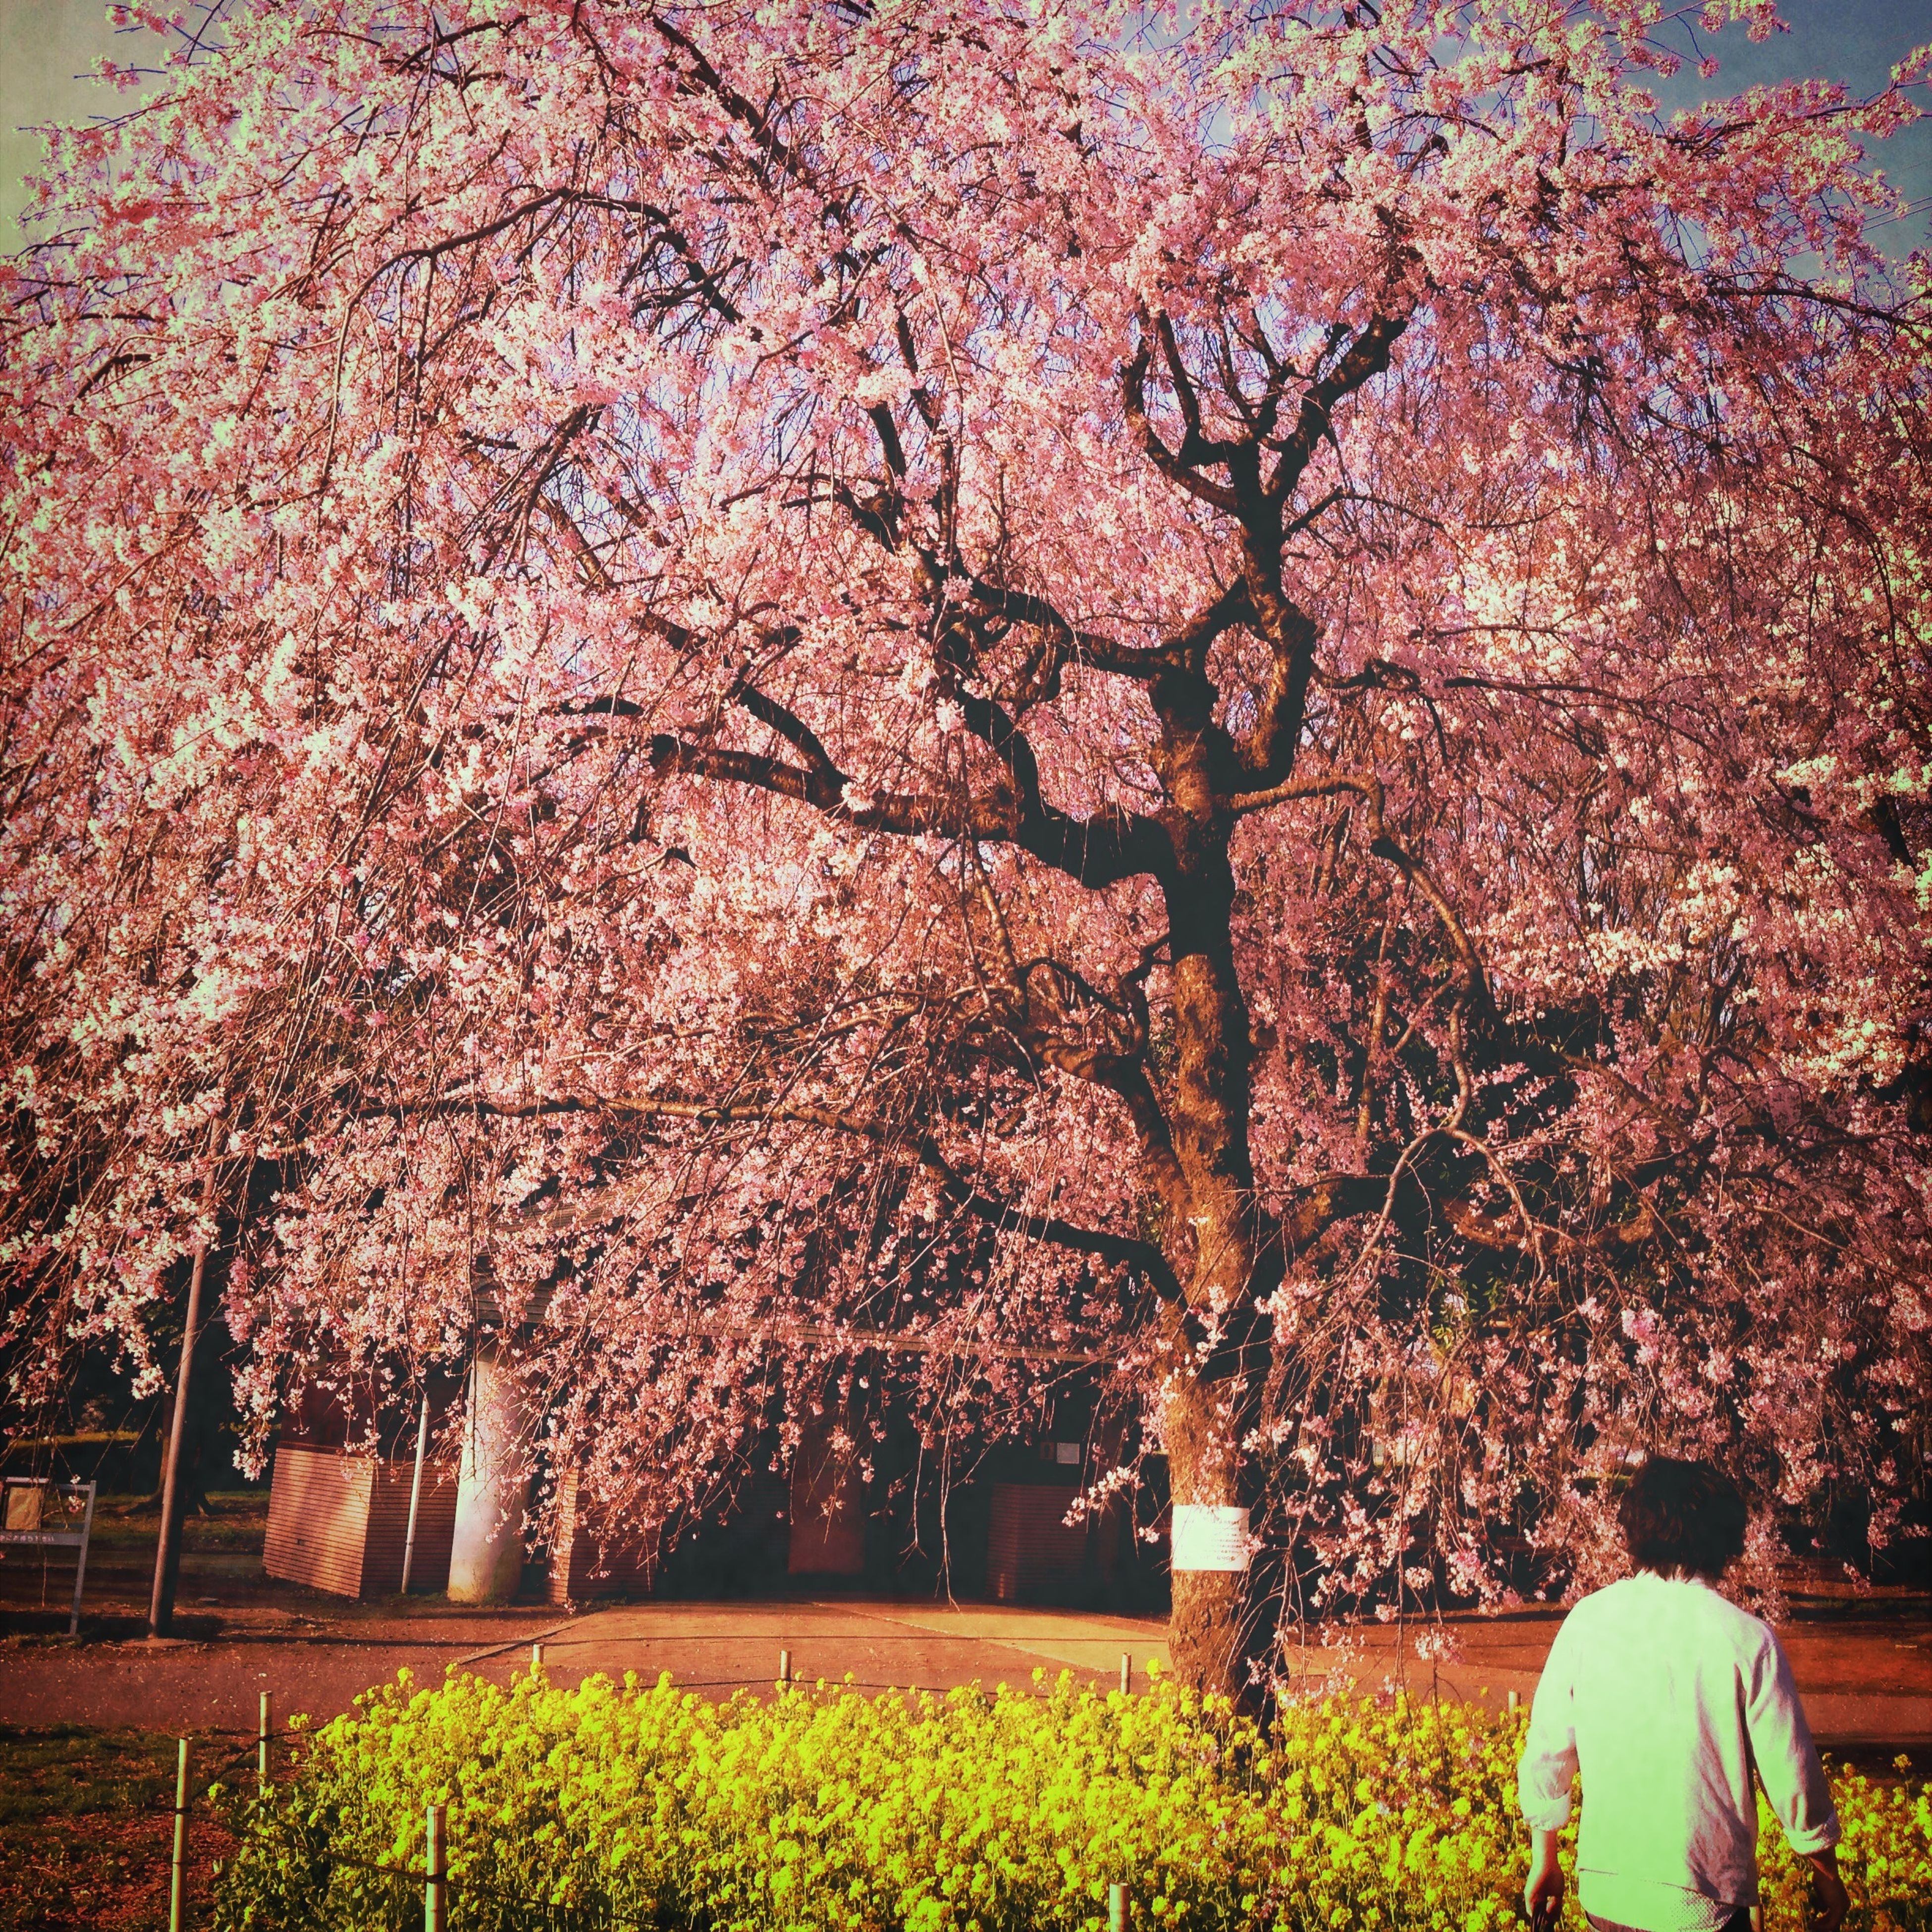 flower, tree, growth, freshness, nature, branch, park - man made space, beauty in nature, fragility, lifestyles, pink color, blossom, plant, person, cherry tree, springtime, outdoors, in bloom